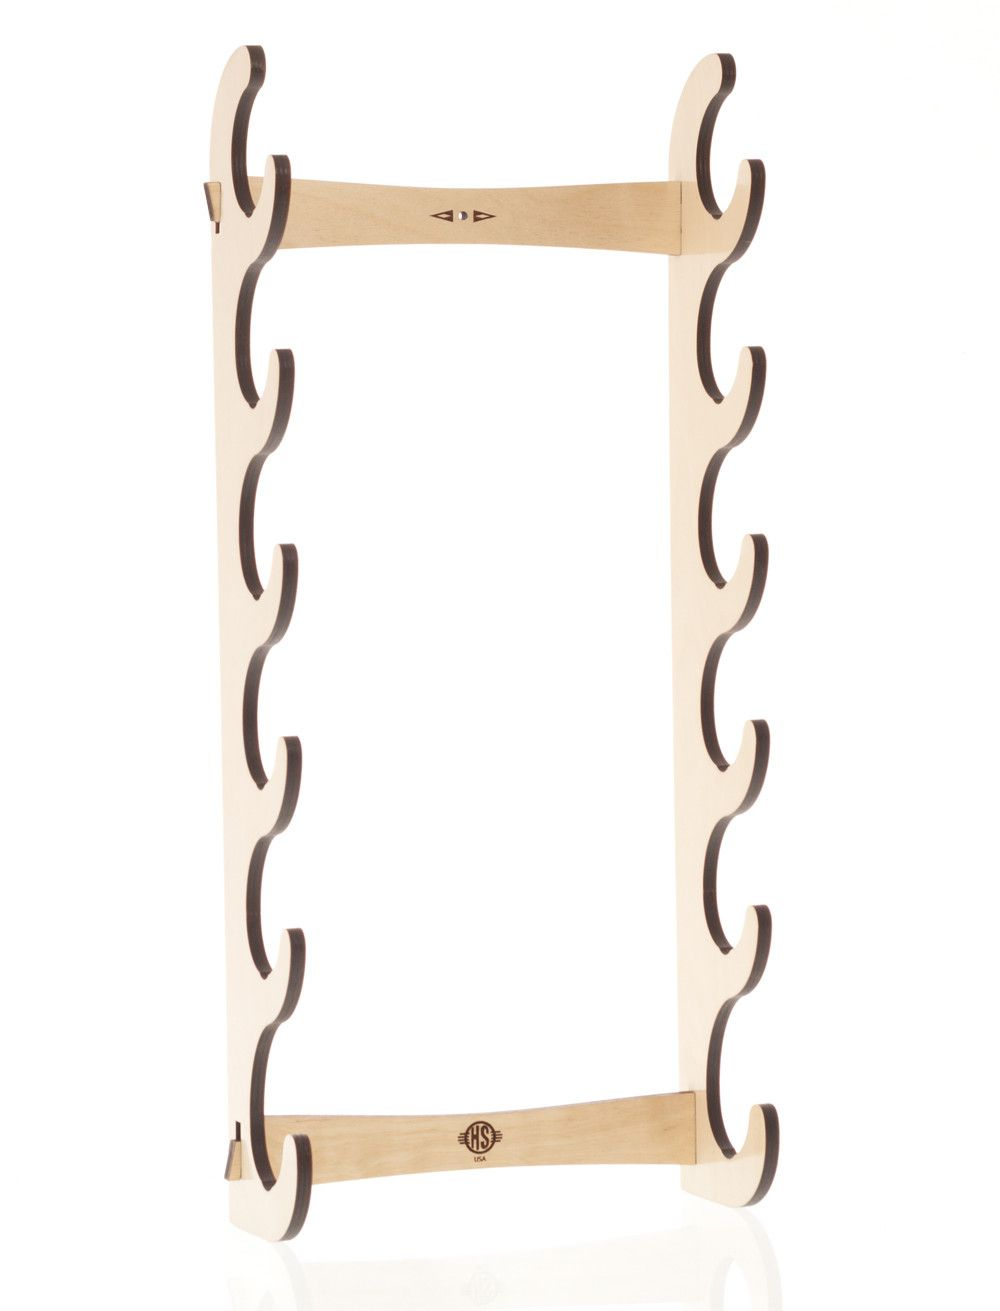 Native Flute Instrument Wall Rack Stand Display Celtic Flute Low Irish Whistle